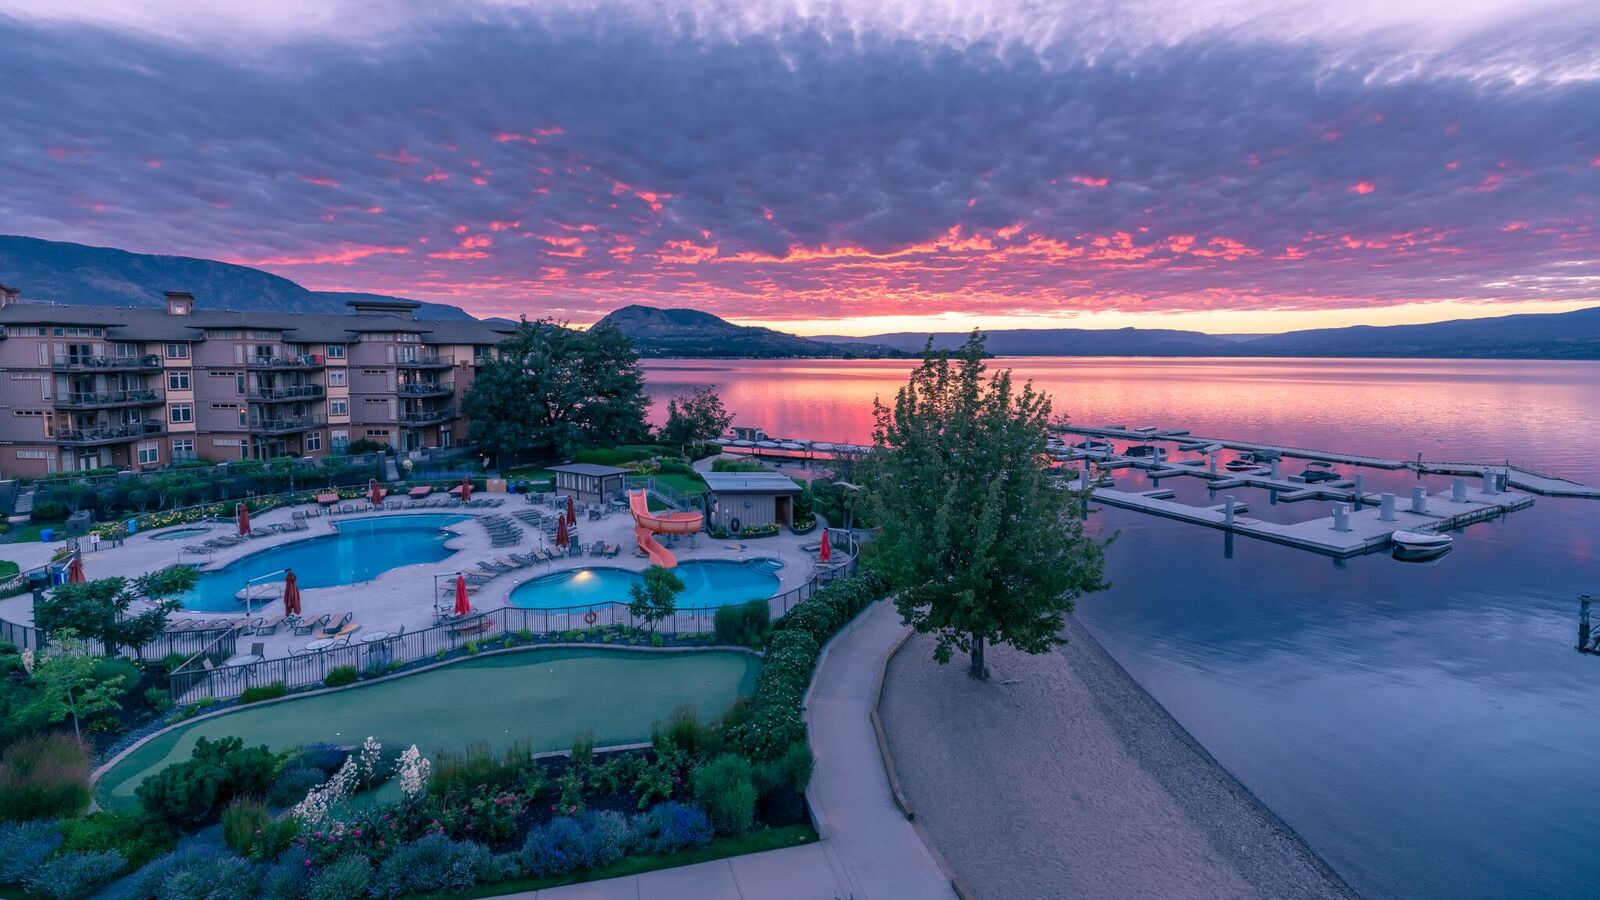 Welcome to The Cove Lakeside Resort in West Kelowna, BC